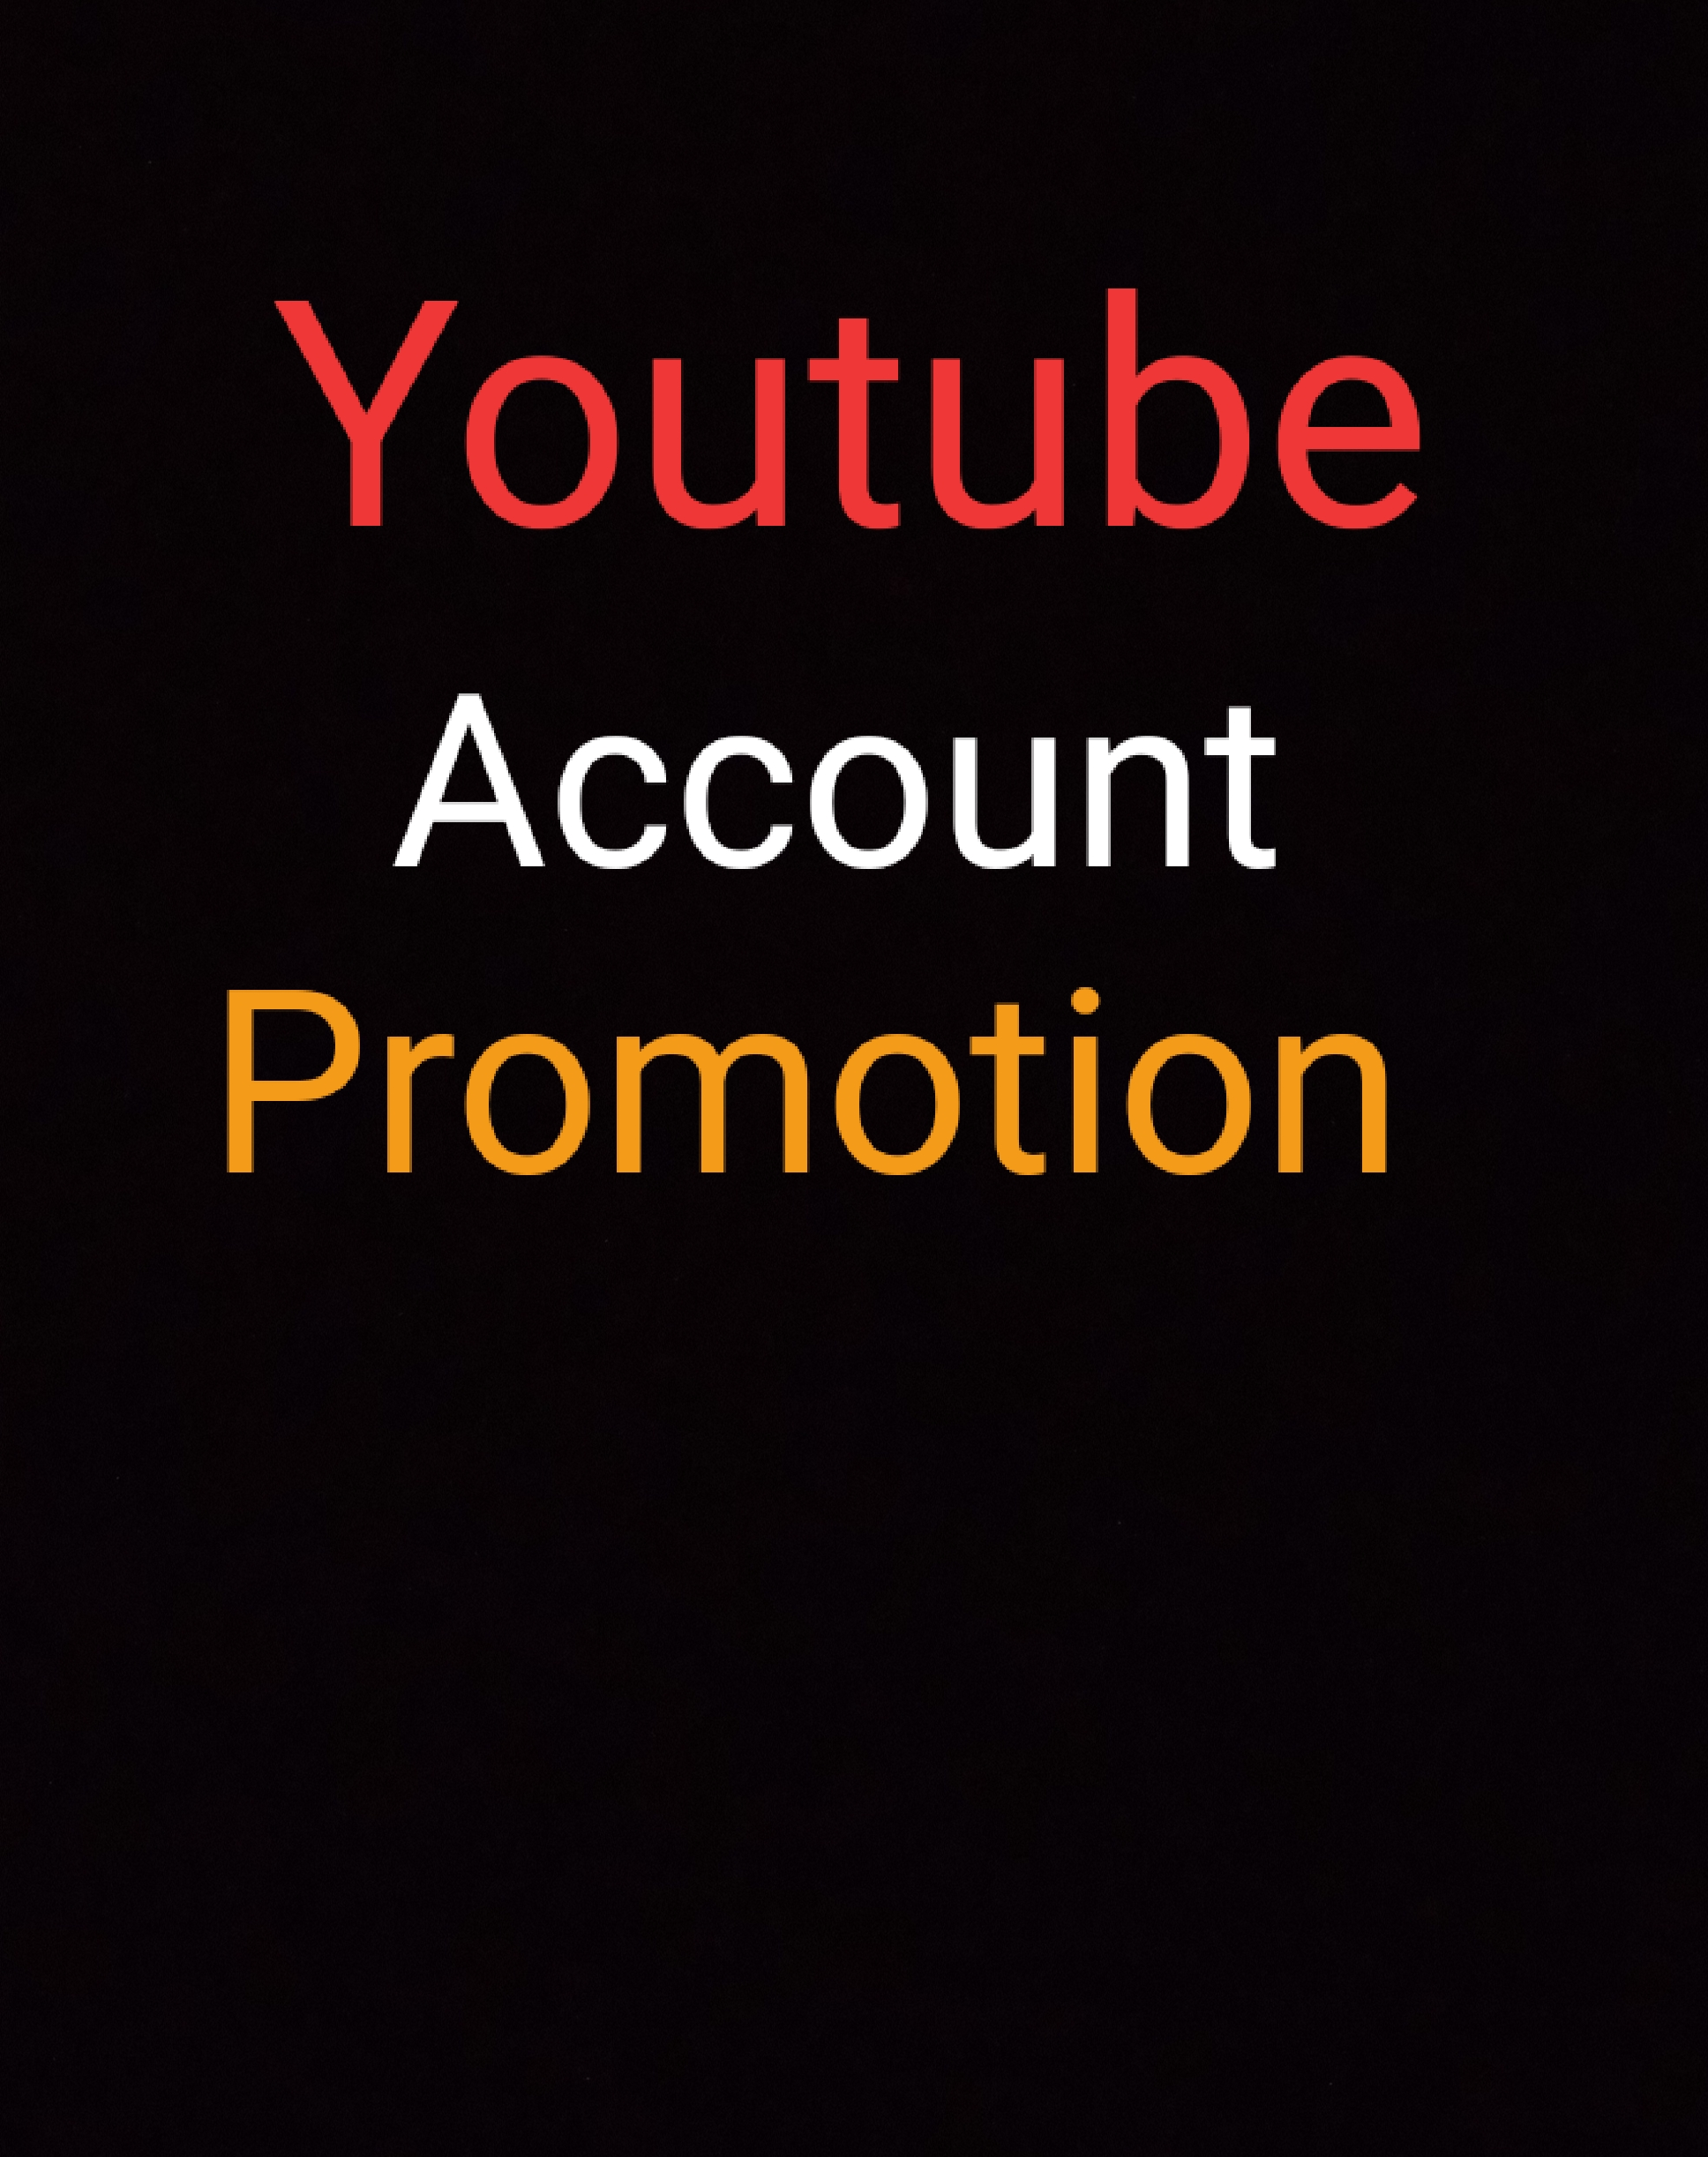 I WILL DO FAST YOUTUBE ACCOUNT PROMOTION AND NON DROP GUARANTEE